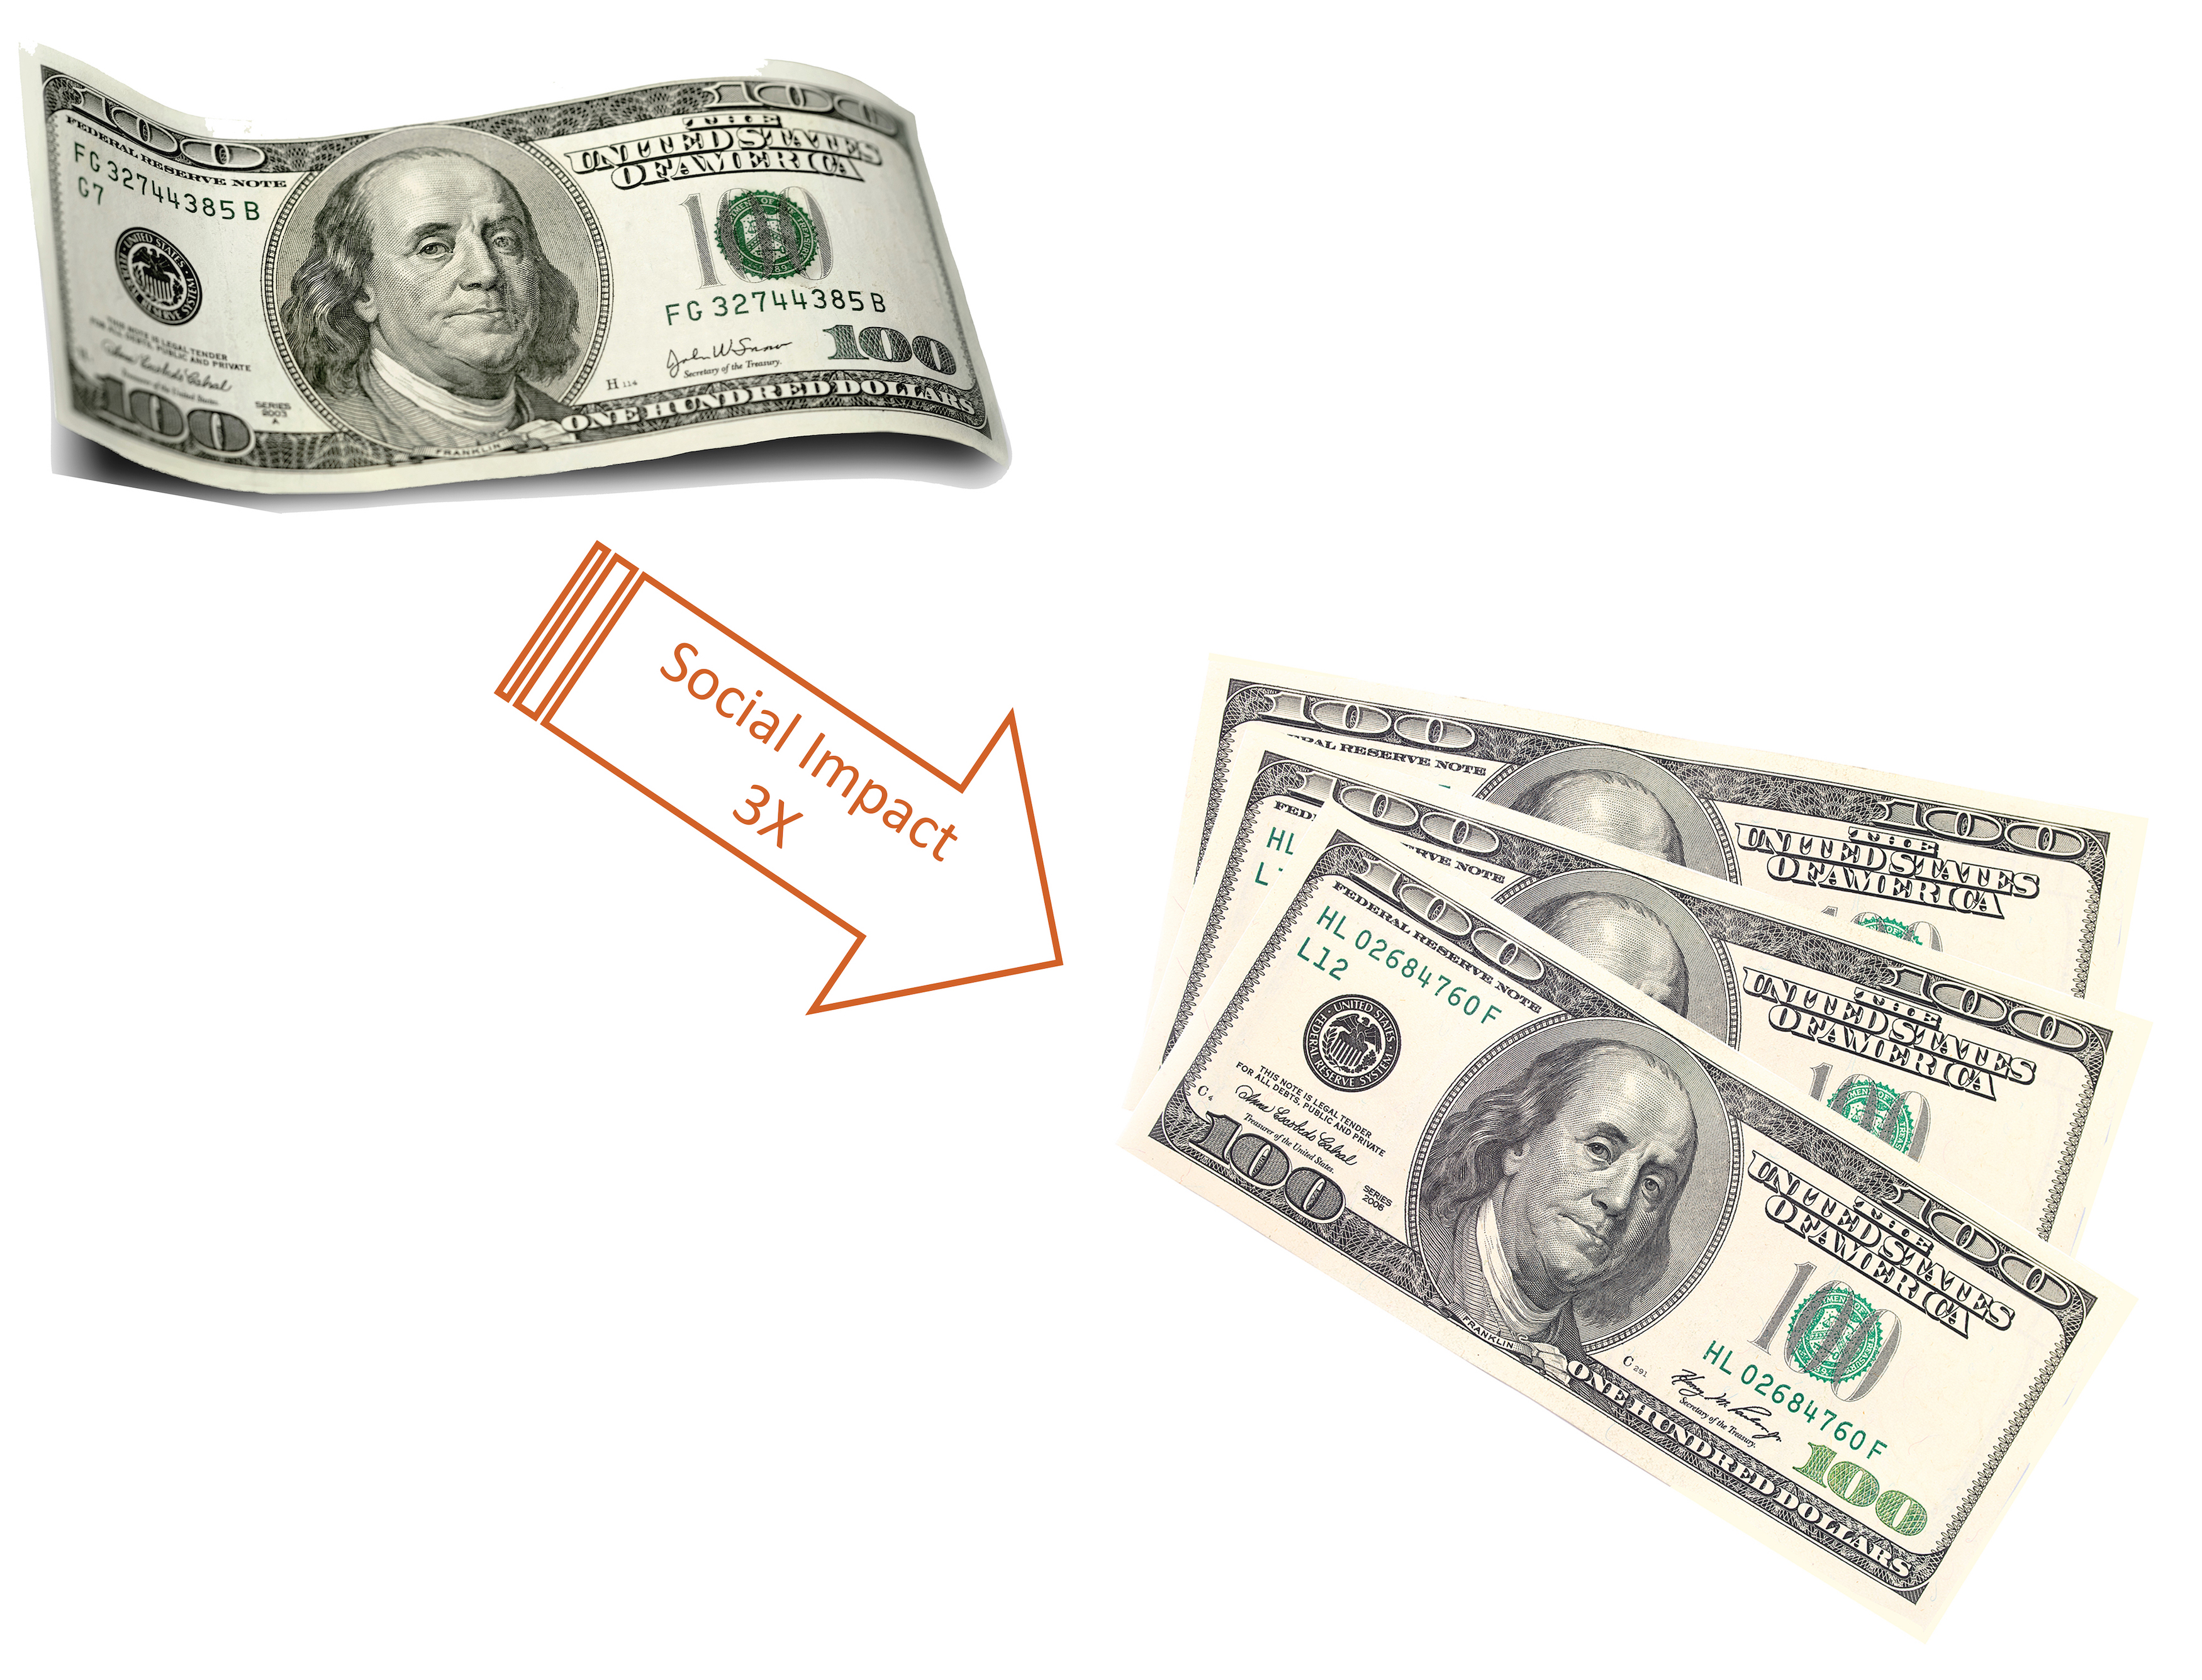 An arrow with the text 'Social Impact 3X' inside it, points from a one hundred U.S. dollar bill to three one hundred U.S. dollar bills.